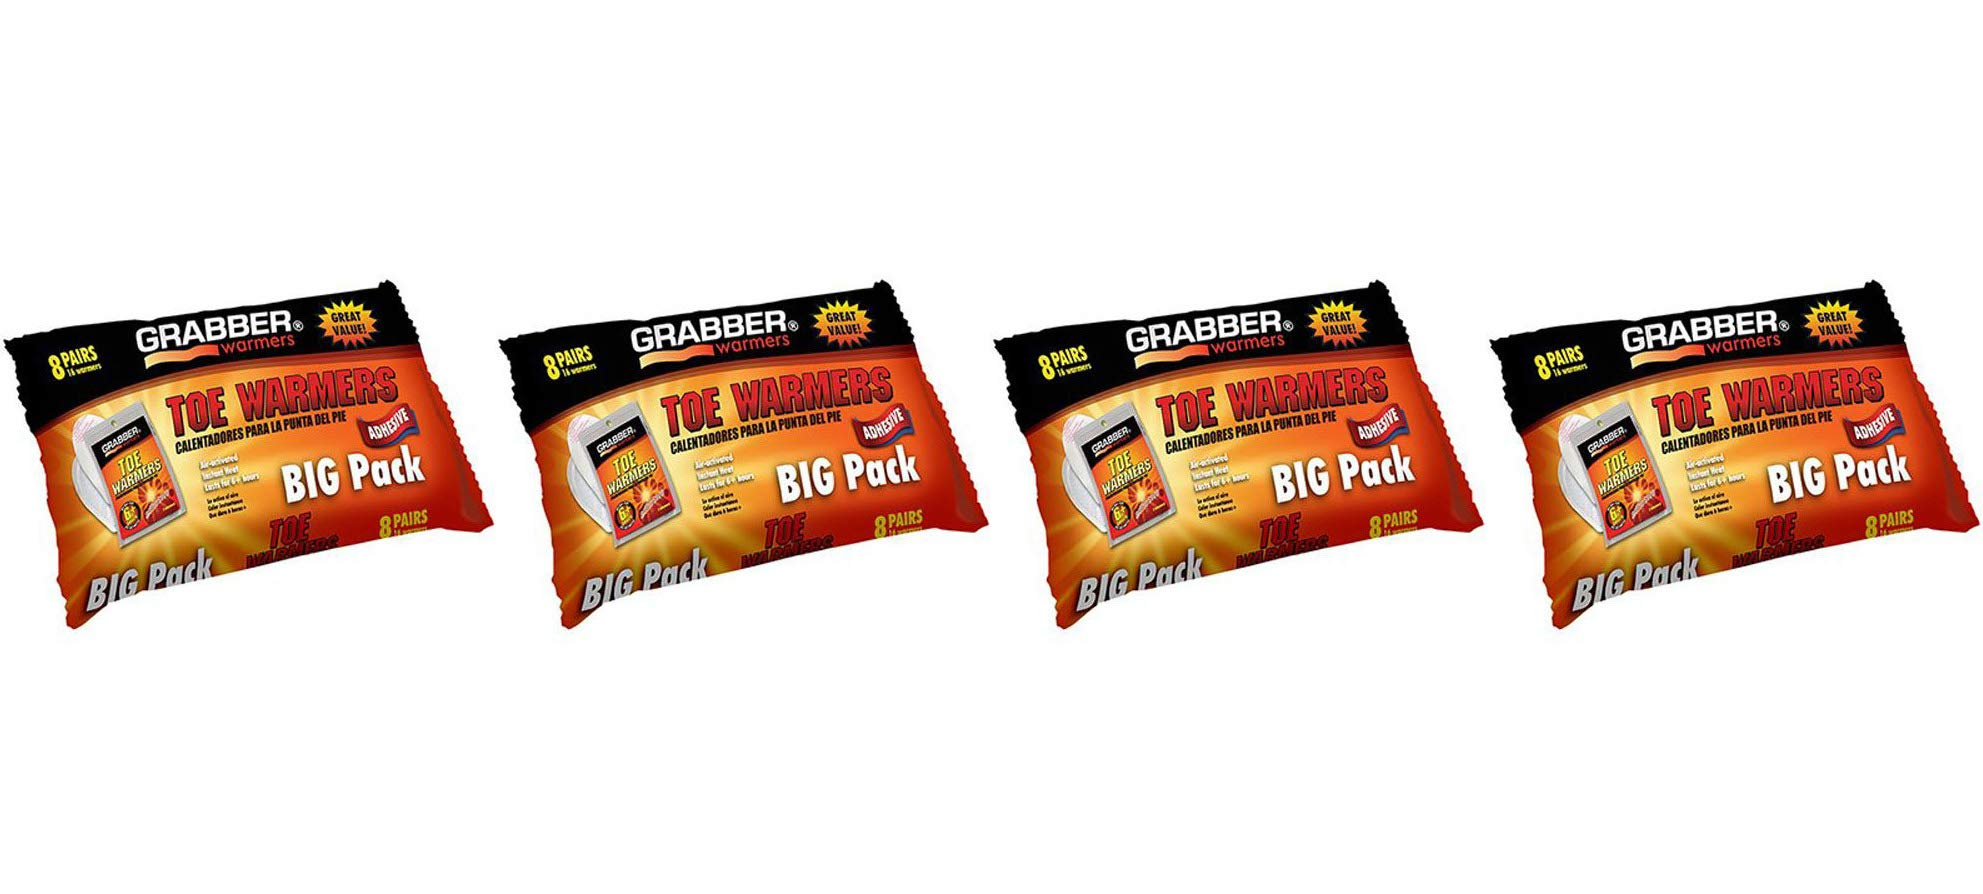 GRABBER WARMERS Toe Warmer Big Pack (8-Pack), 9 x 4.5-Inch (Fоur Расk) by GRABBER WARMERS